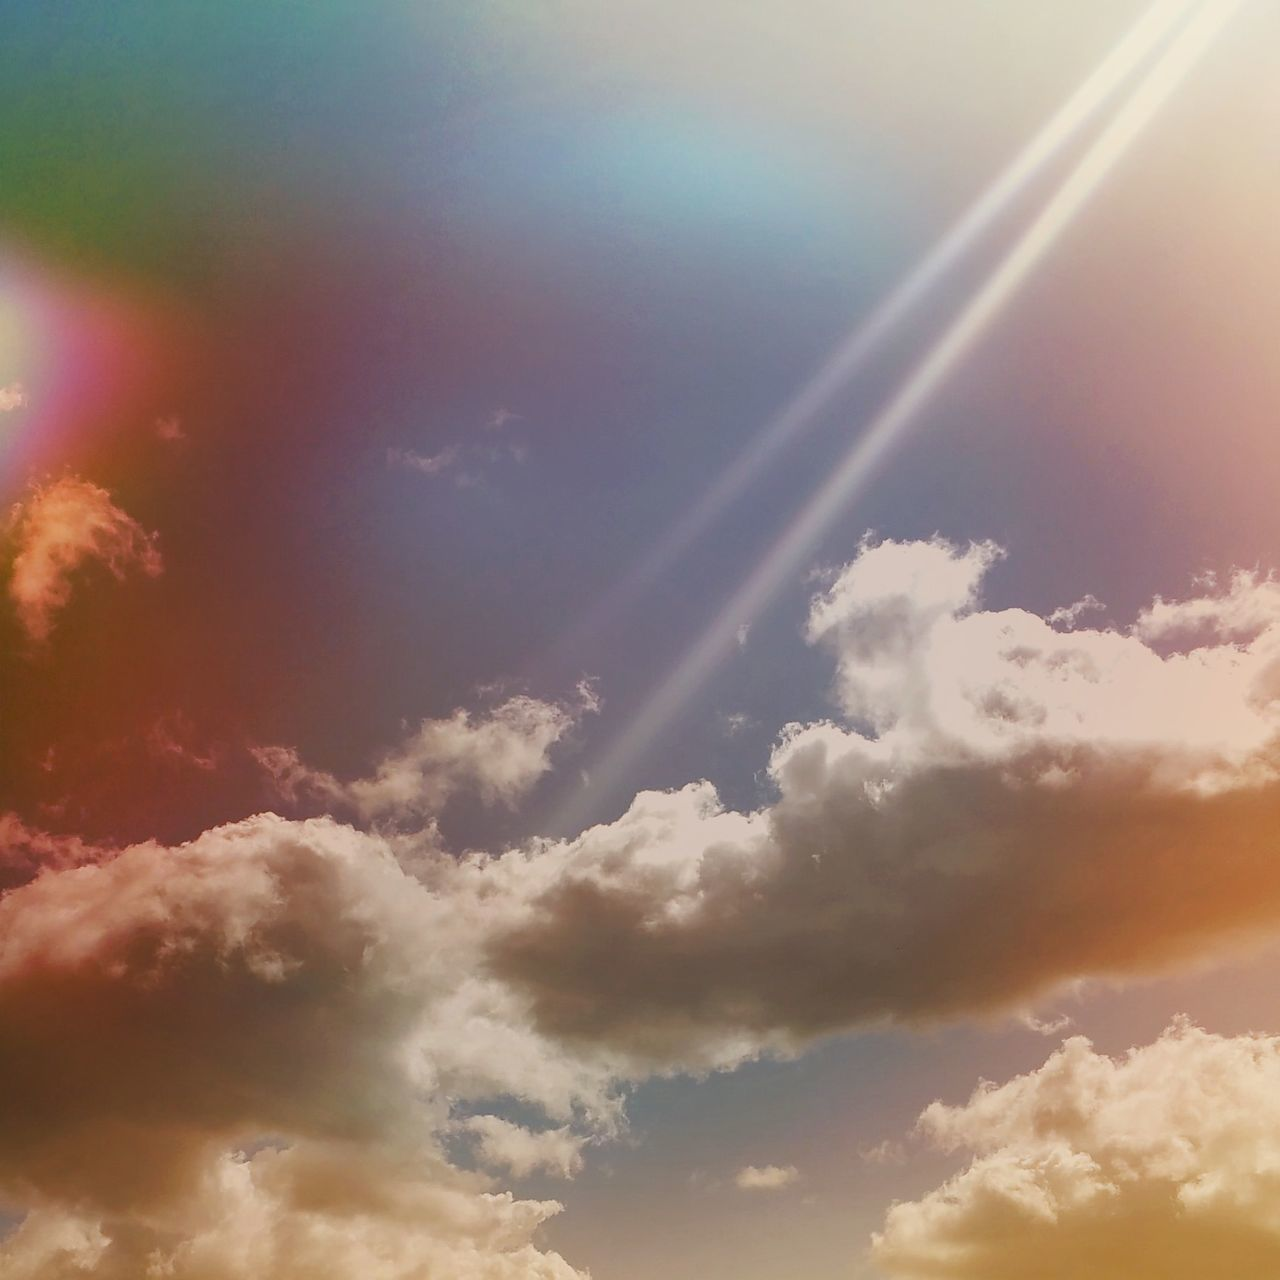 beauty in nature, nature, sky, majestic, scenics, sunbeam, tranquility, cloud - sky, no people, tranquil scene, outdoors, backgrounds, sky only, low angle view, sunset, day, contrail, vapor trail